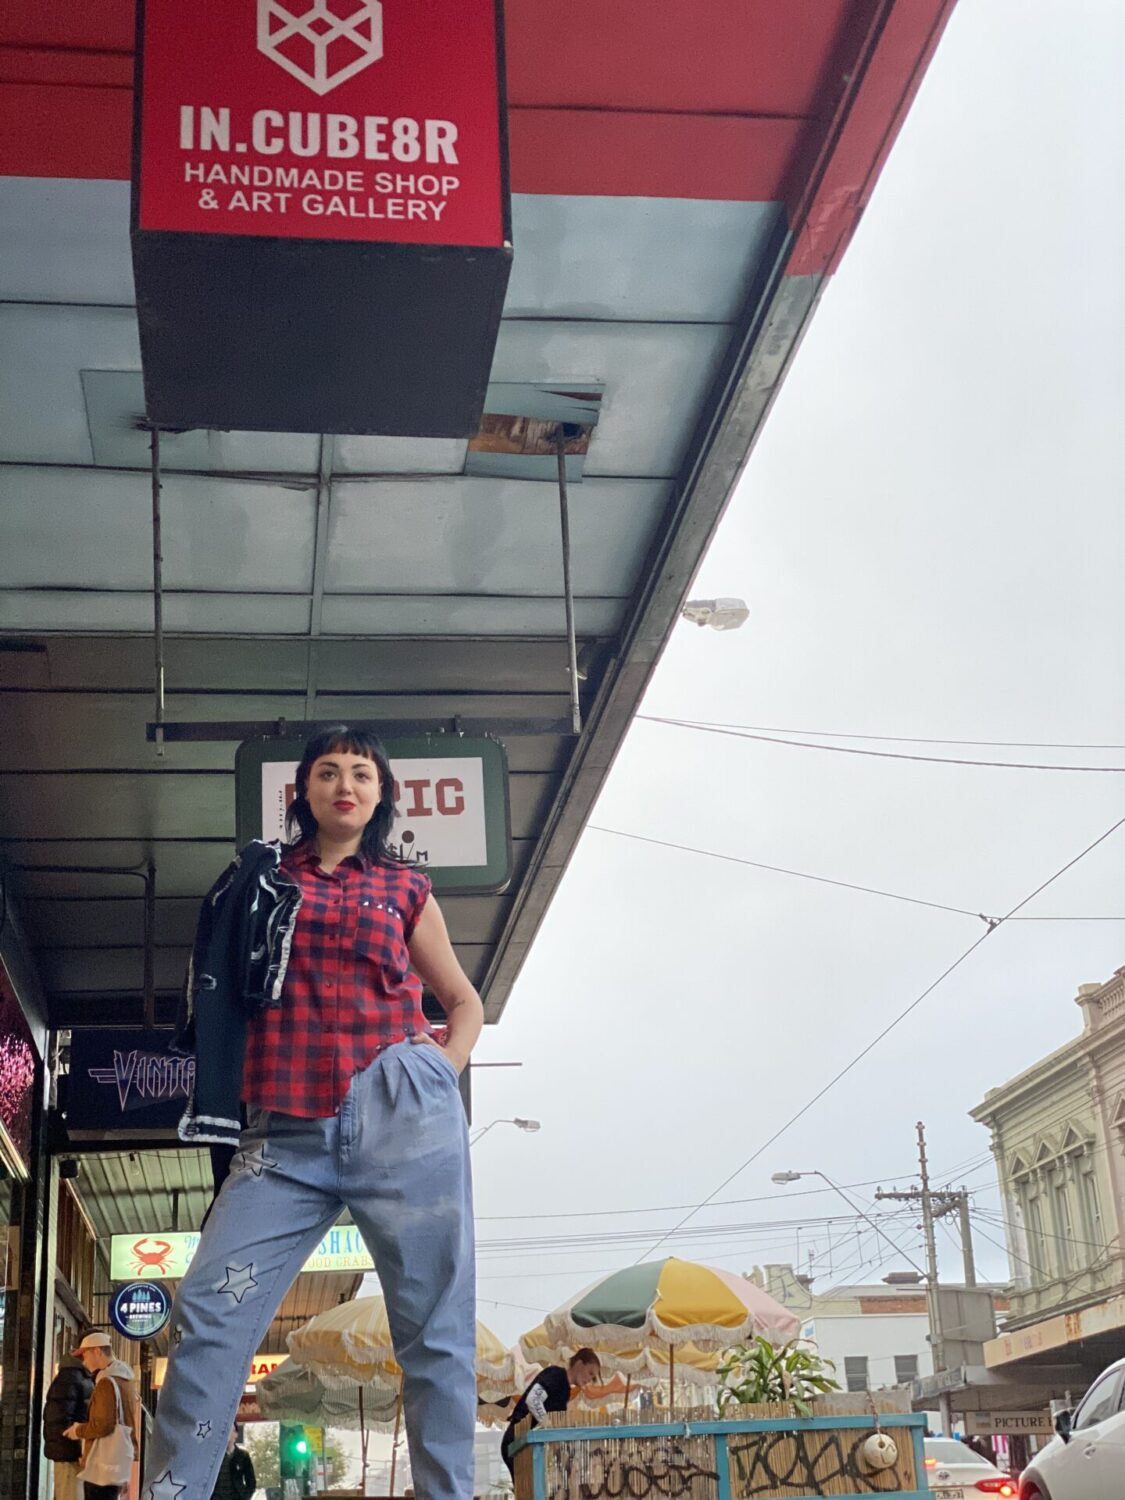 whats-in-our-fitzroy-shop-window-this-week ellemay.michael 069154